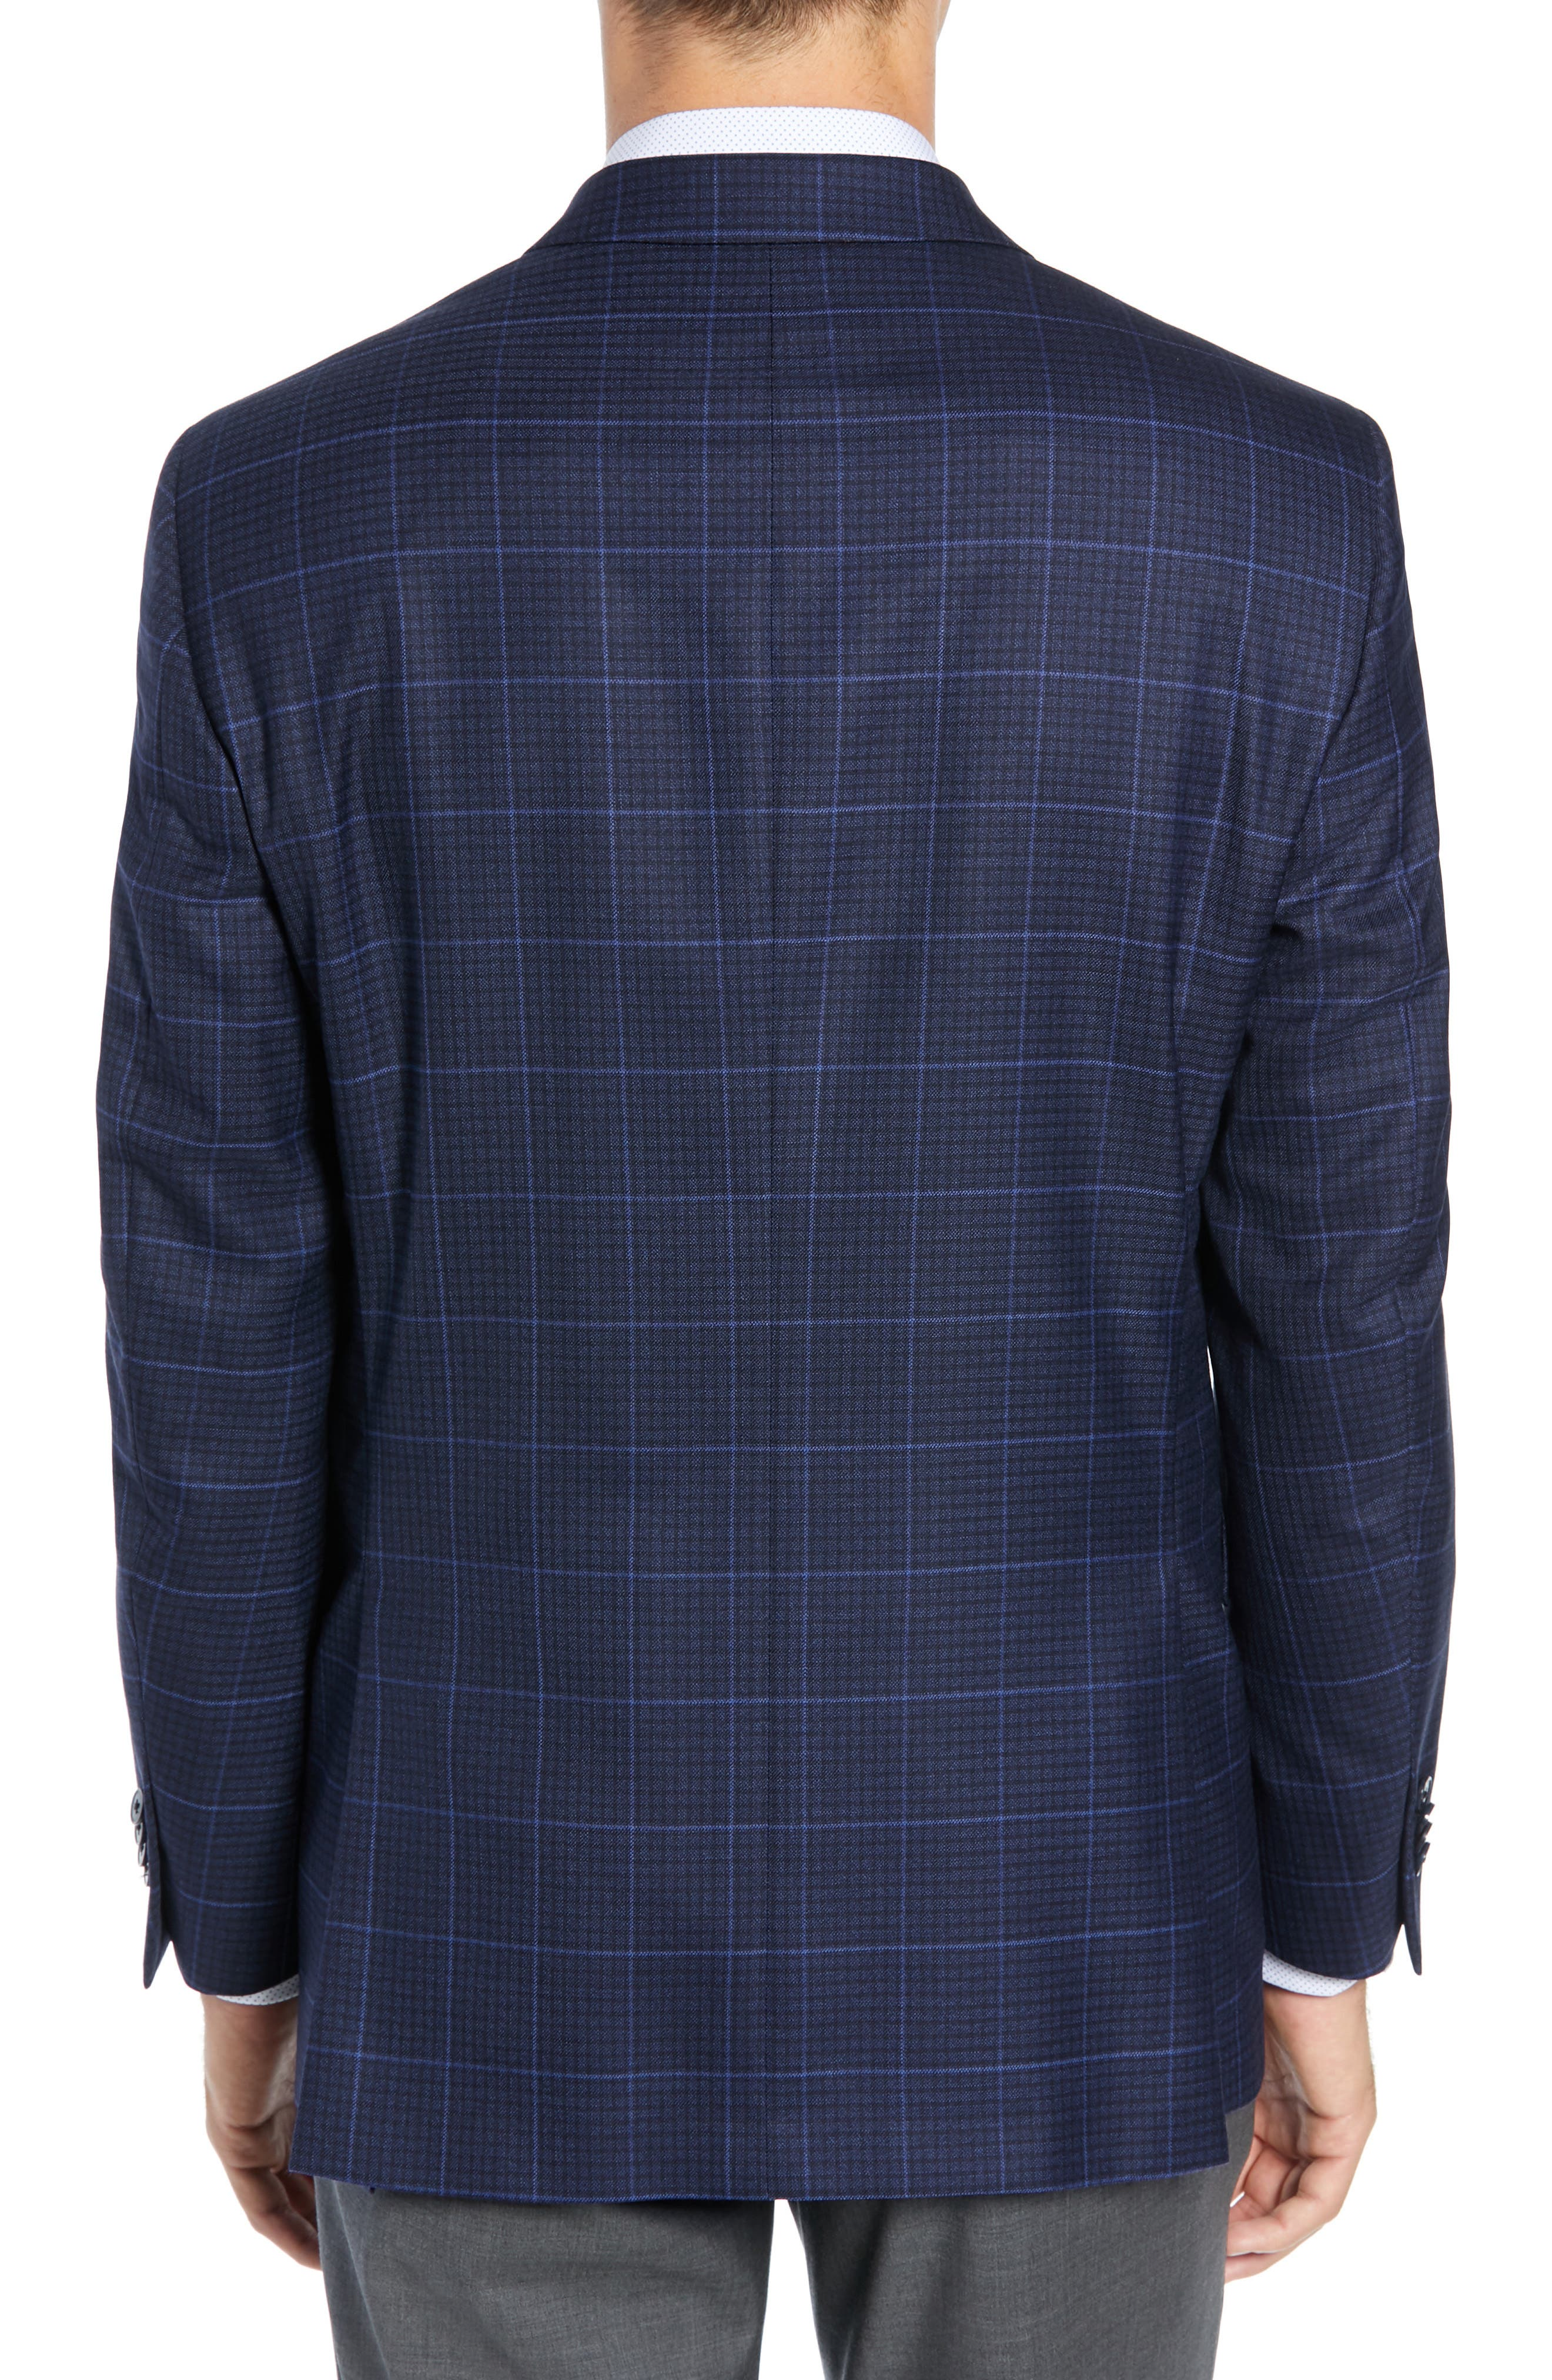 Flynn Classic Fit Plaid Check Sport Coat,                             Alternate thumbnail 2, color,                             NAVY